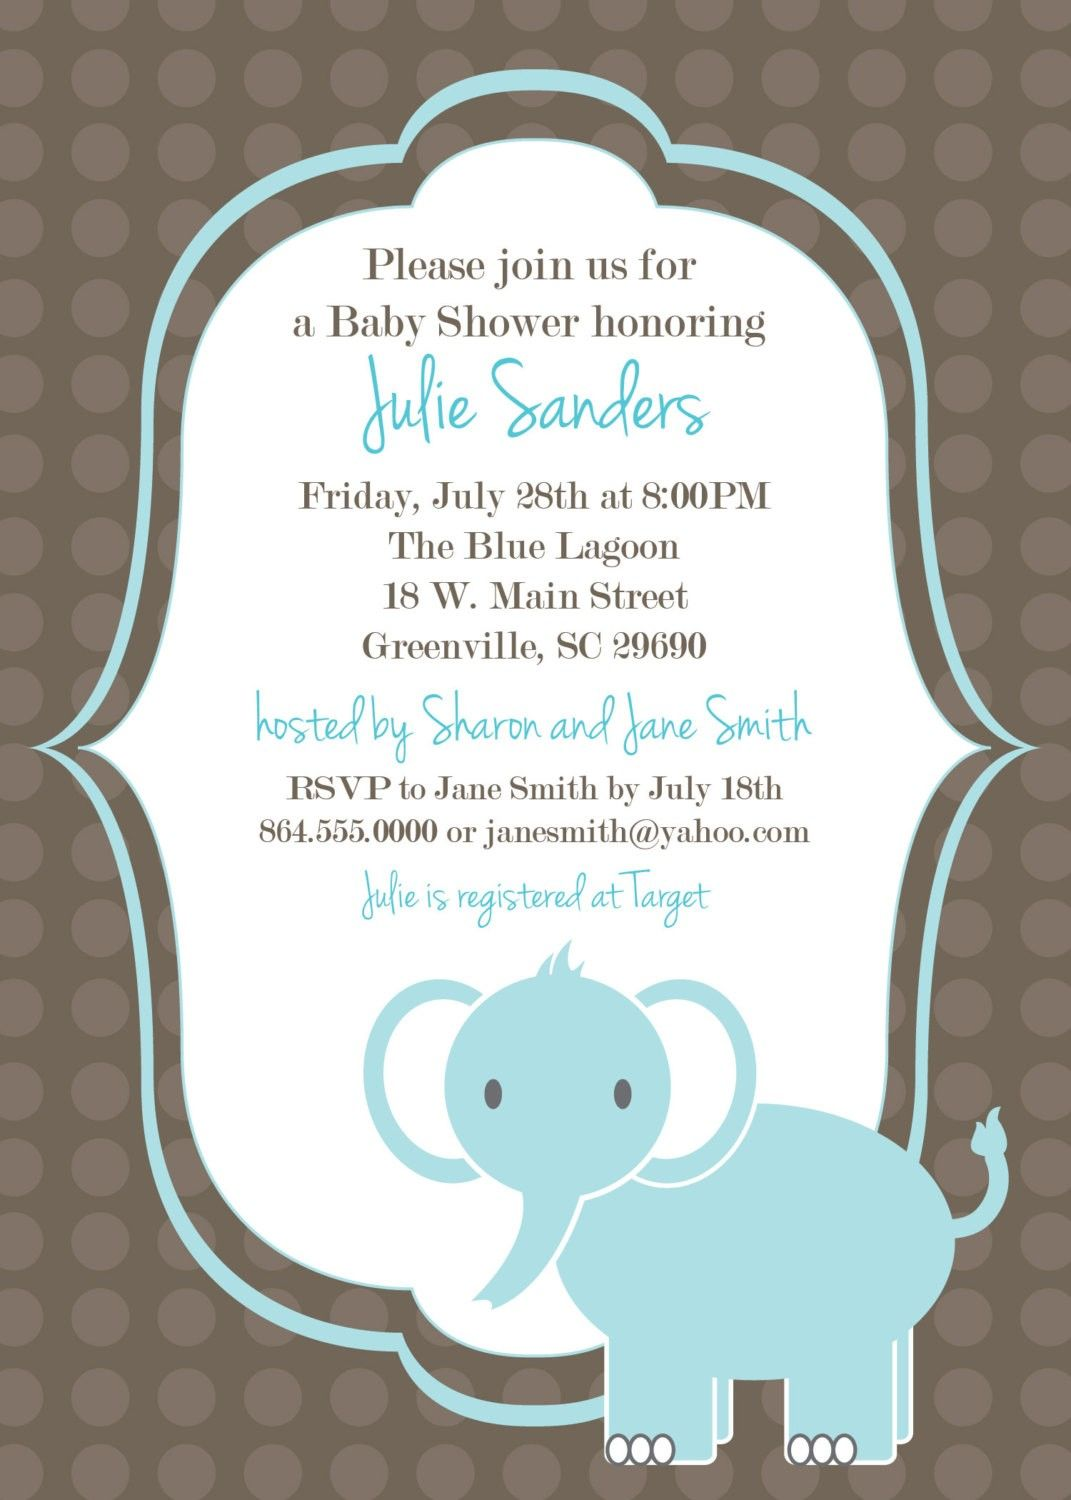 Baby shower invitations templates idealstalist baby shower invitations templates filmwisefo